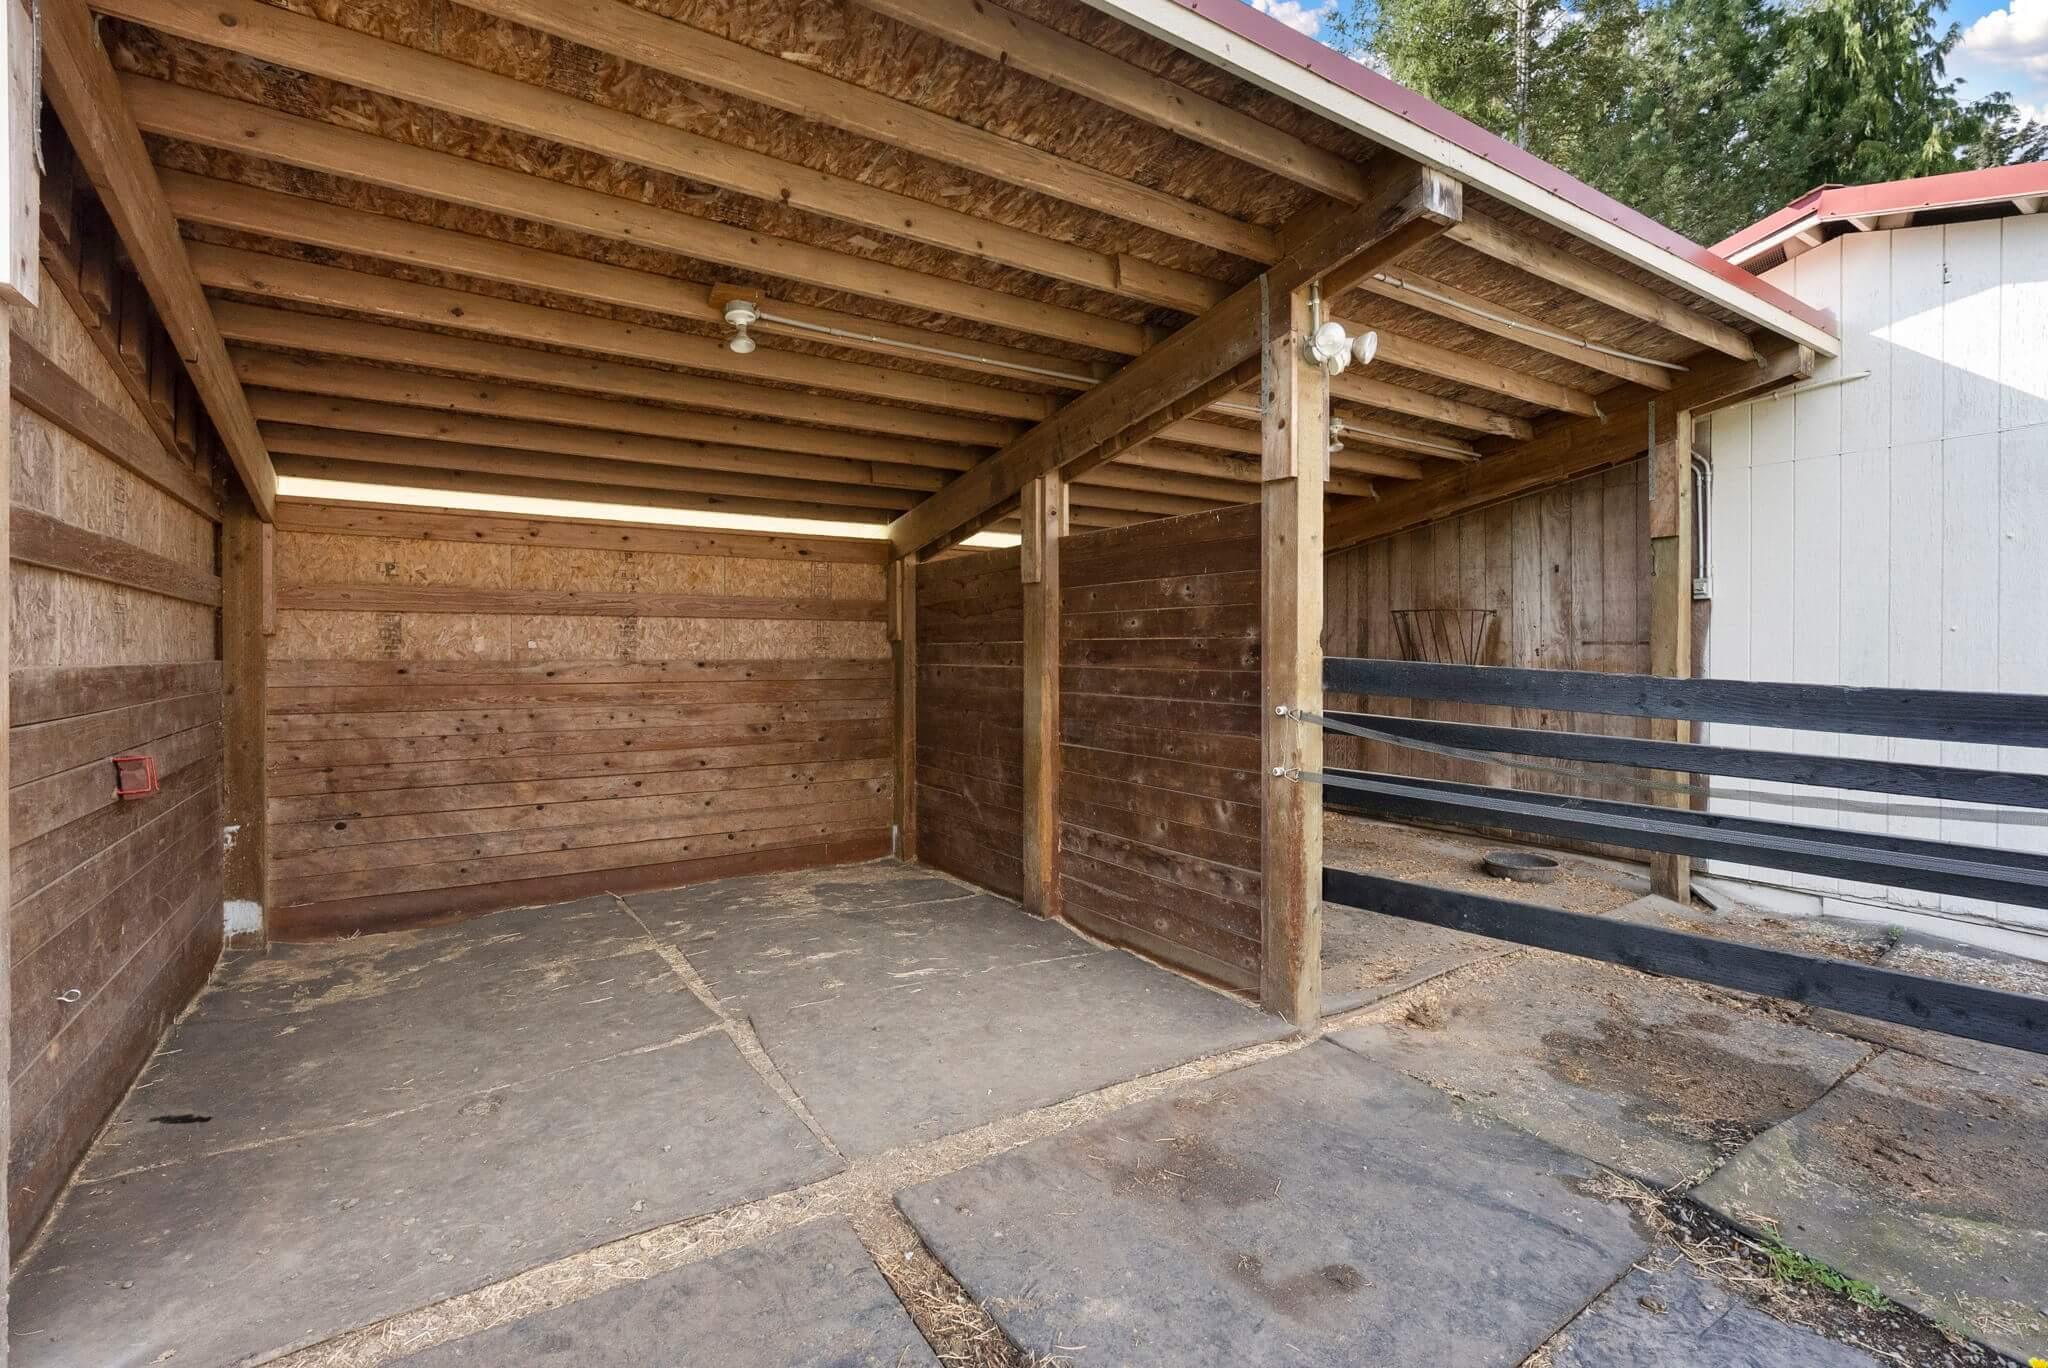 Rubber-matted run-in stalls